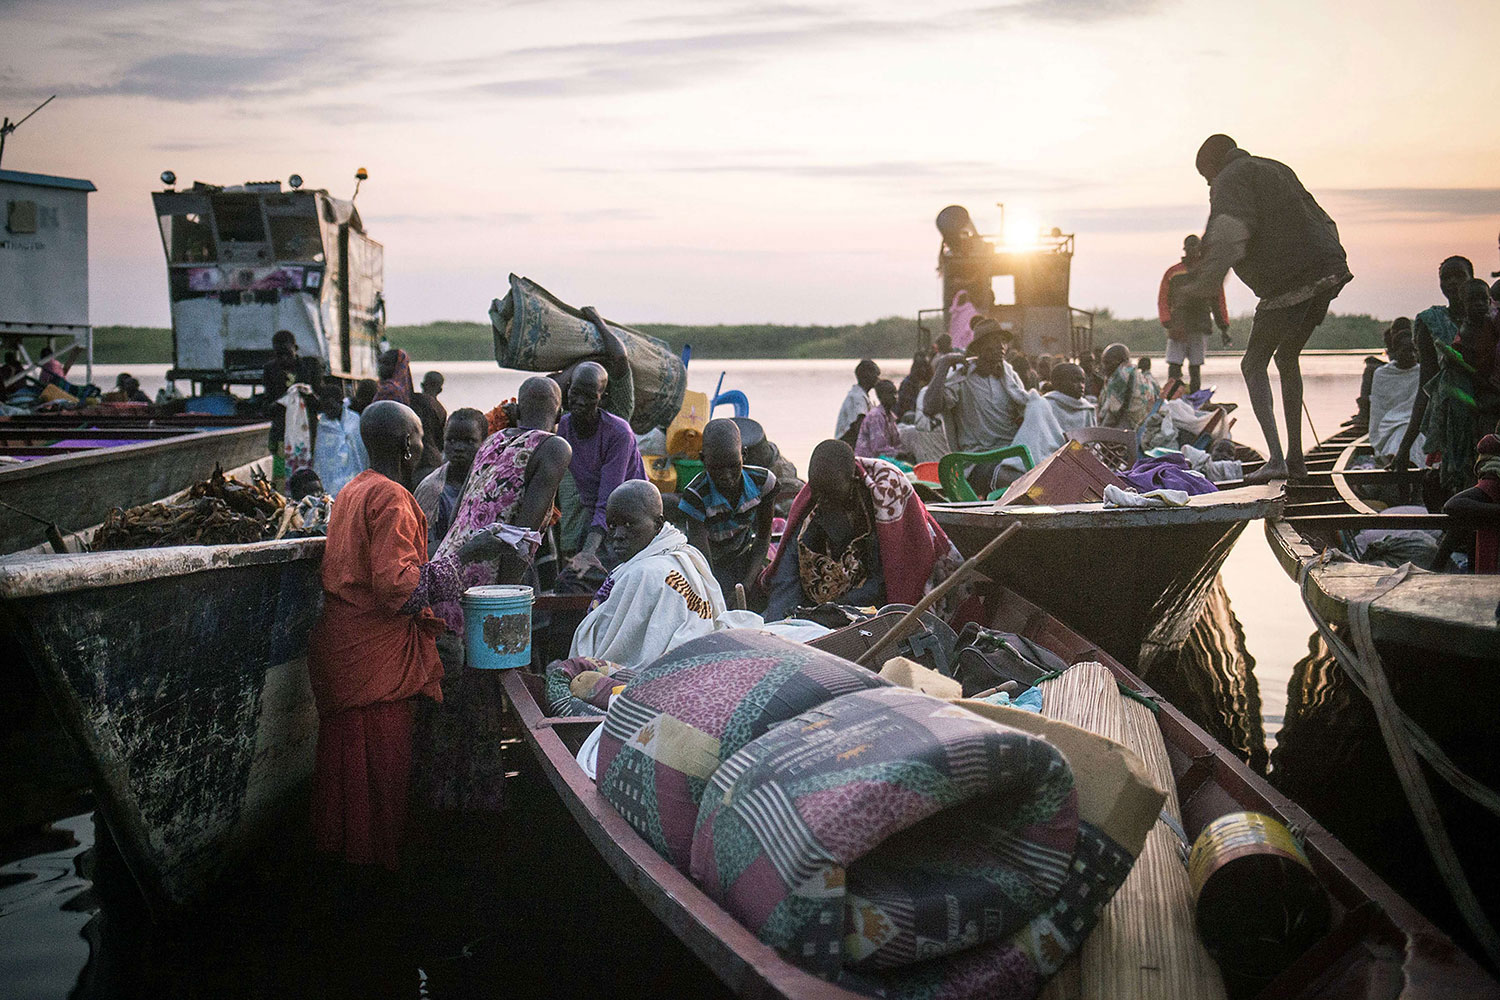 Jan. 9, 2014. People unload their few belongings that they were able to bring with them to refugee camps, Minkammen, South Sudan